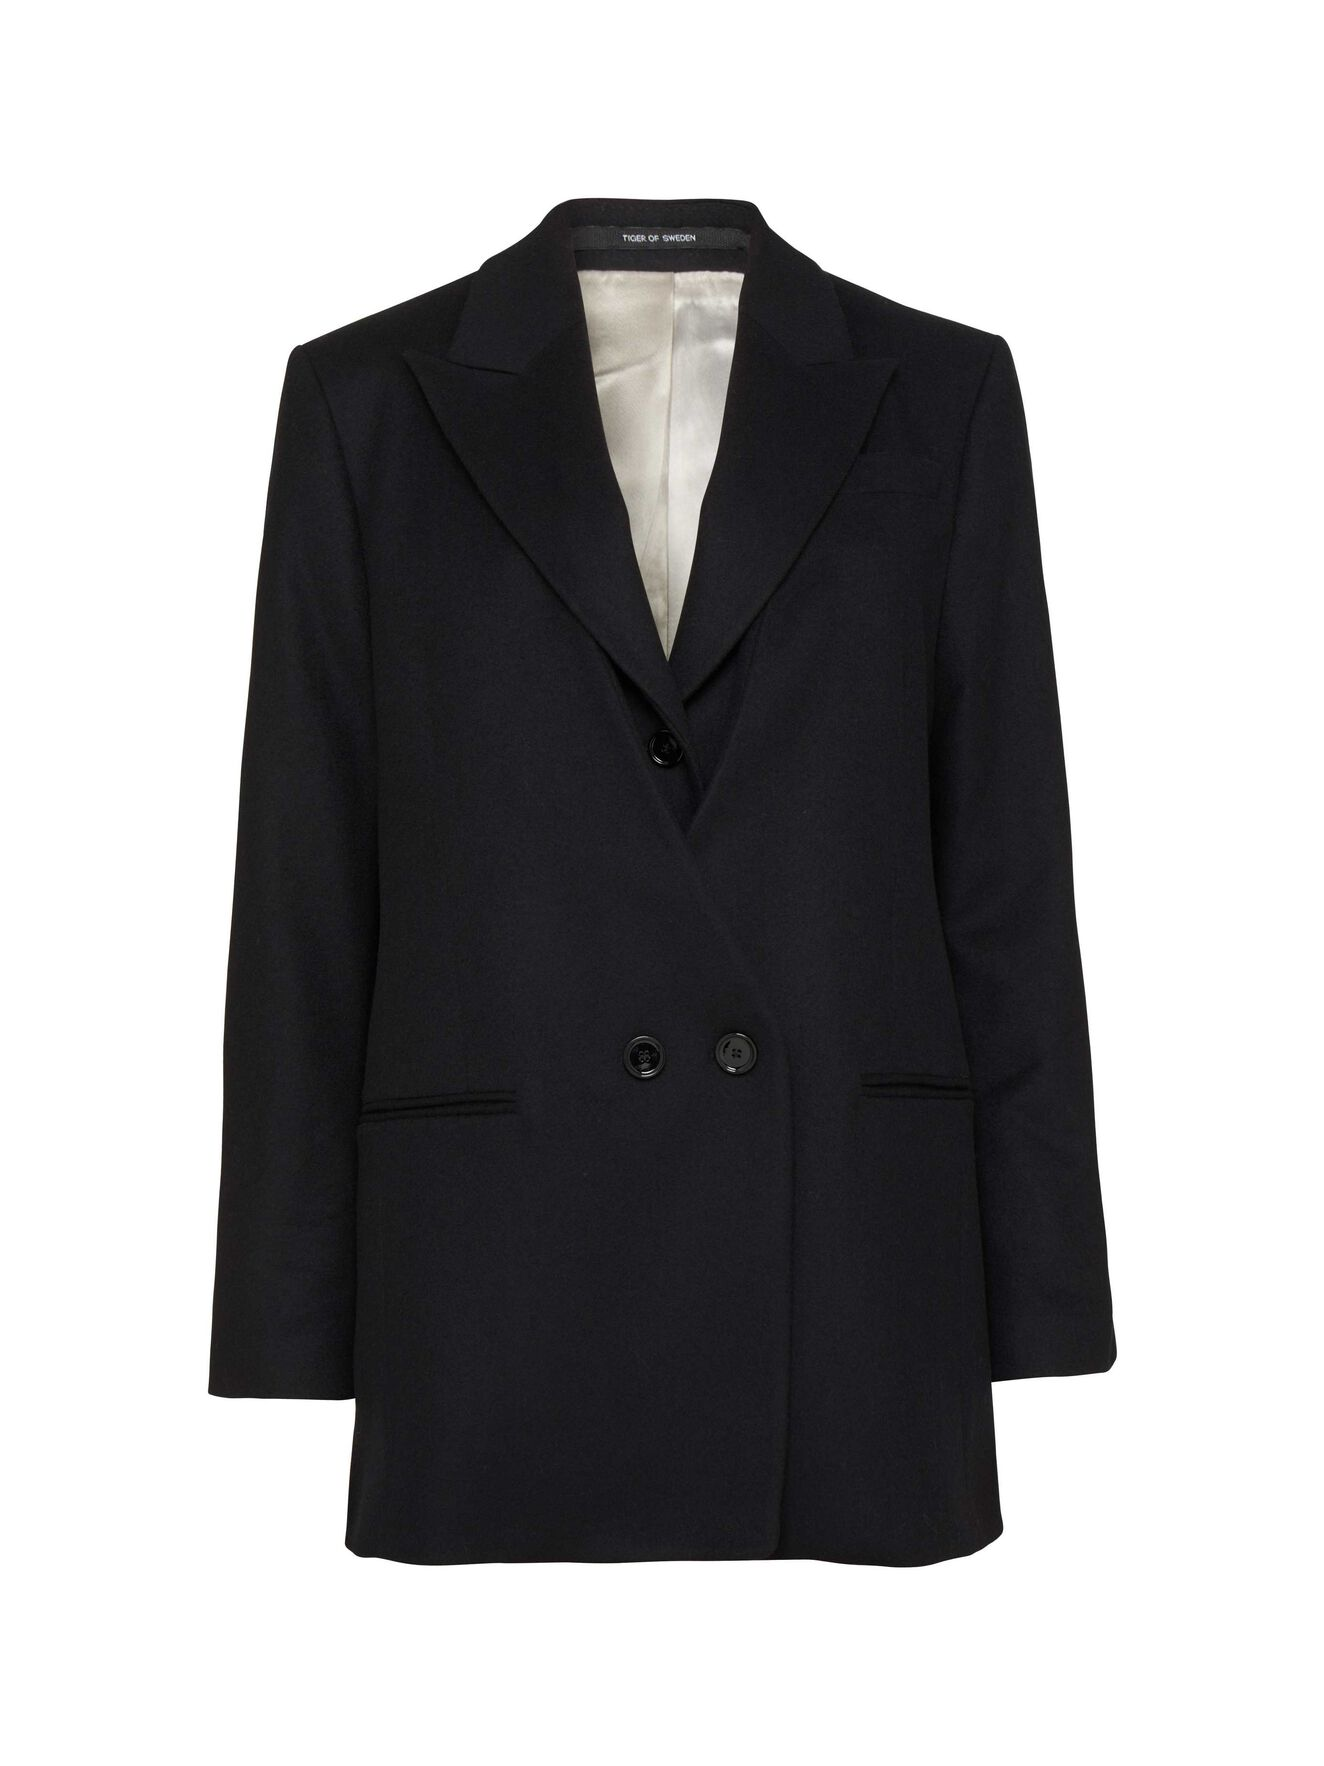 Blazer Acis in Midnight Black from Tiger of Sweden